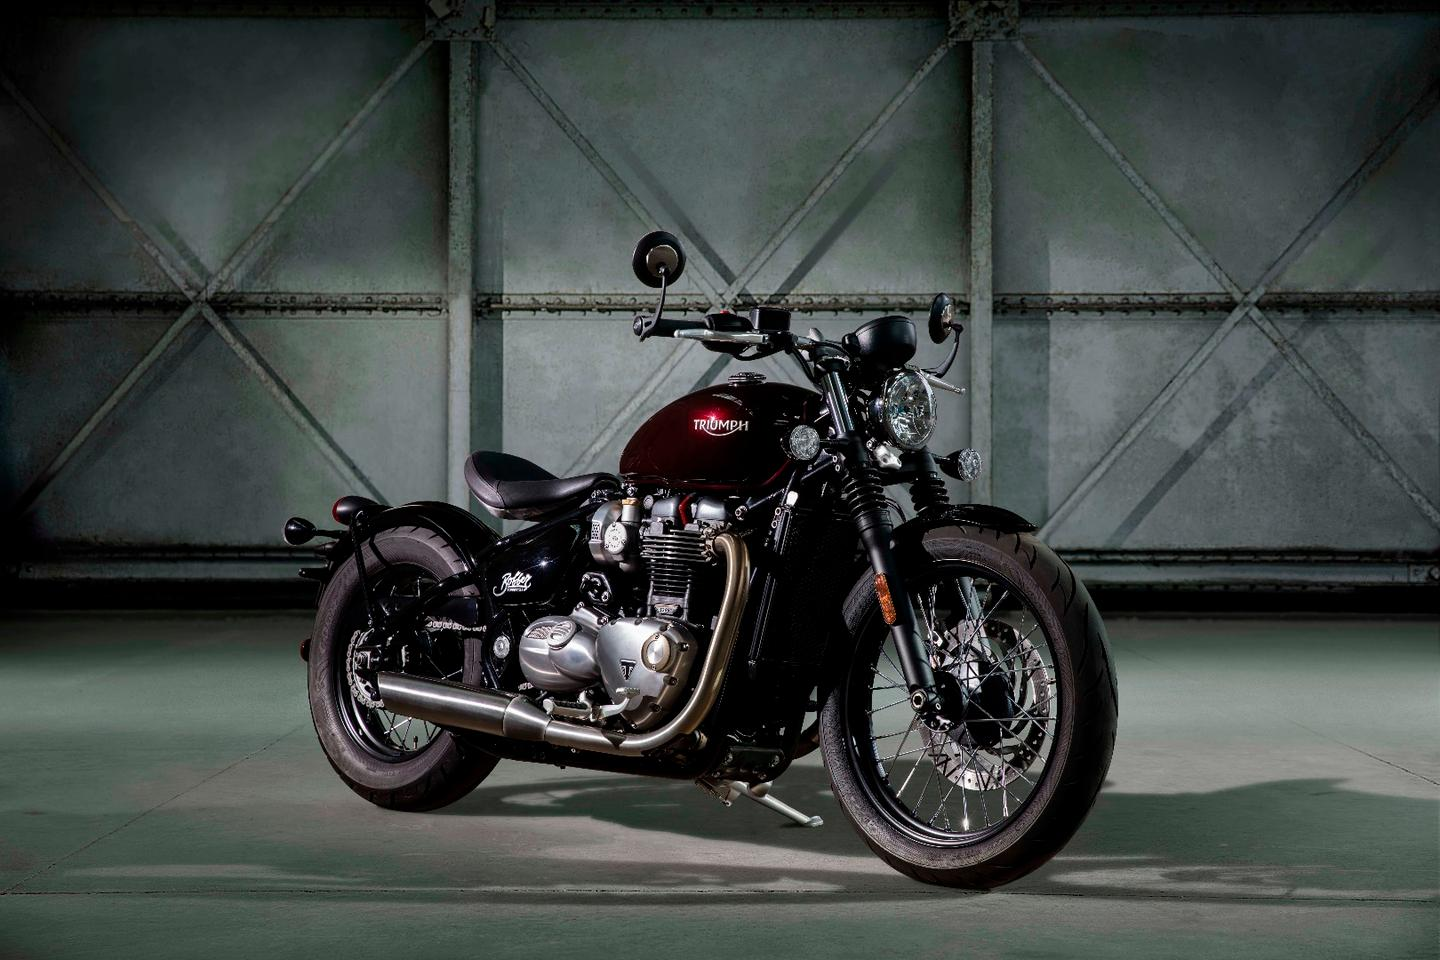 The Triumph Bonneville Bobber will give custom bike builders another canvas to build upon